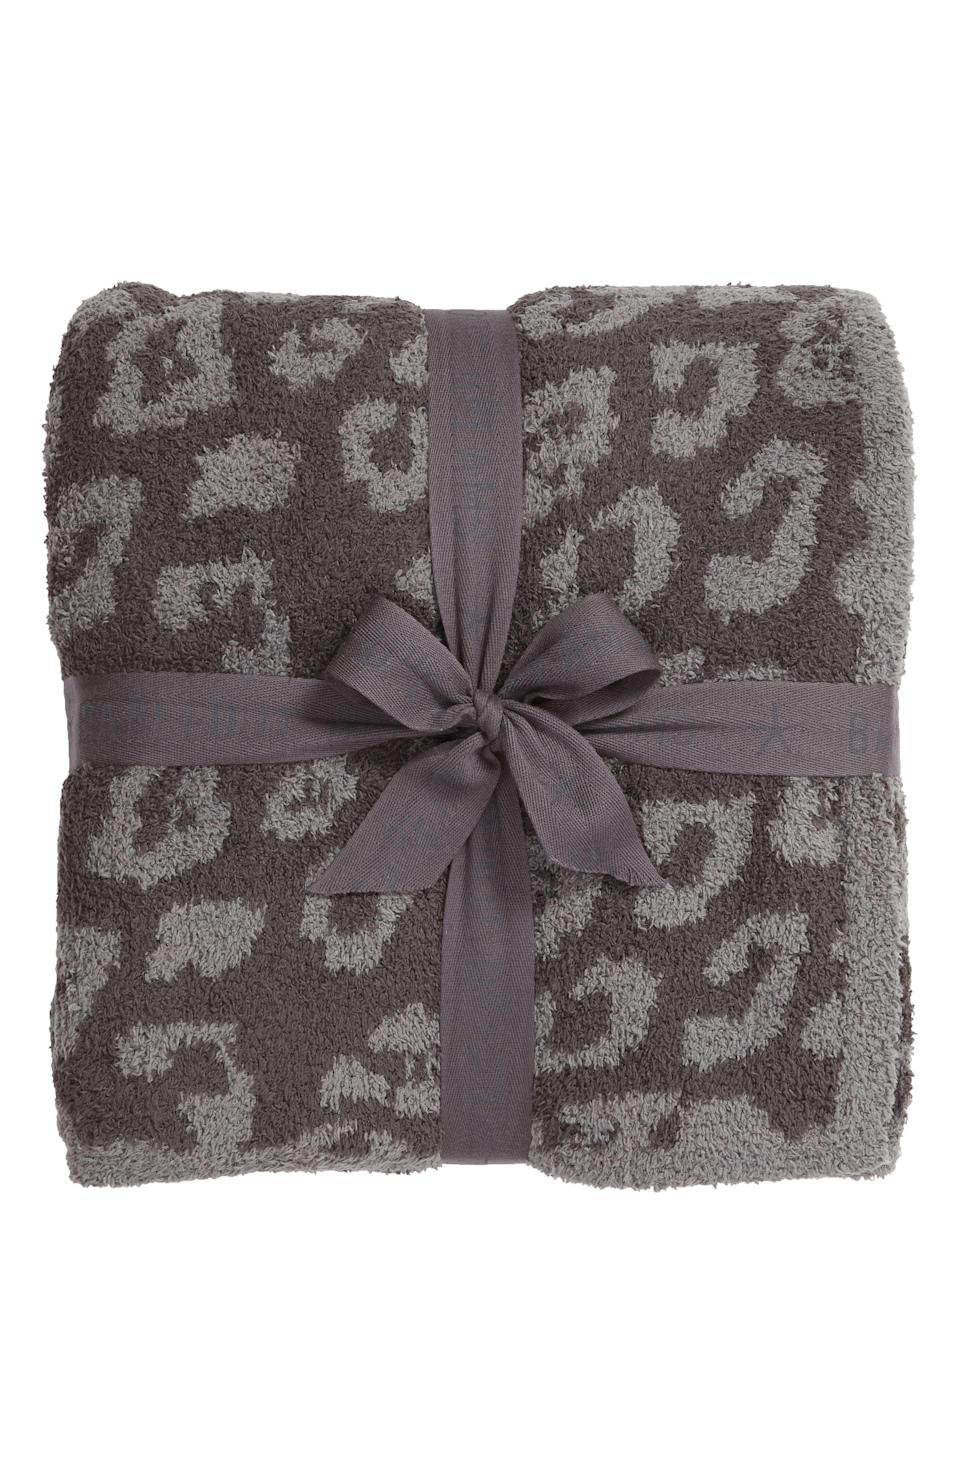 """<p><strong>BAREFOOT DREAMS</strong></p><p>nordstrom.com</p><p><strong>$180.00</strong></p><p><a href=""""https://go.redirectingat.com?id=74968X1596630&url=https%3A%2F%2Fwww.nordstrom.com%2Fs%2Fbarefoot-dreams-in-the-wild-throw-blanket%2F3362118&sref=https%3A%2F%2Fwww.housebeautiful.com%2Fshopping%2Fbest-stores%2Fg37155428%2Fnordstrom-anniversary-sale-home-deals-2021%2F"""" rel=""""nofollow noopener"""" target=""""_blank"""" data-ylk=""""slk:BUY NOW"""" class=""""link rapid-noclick-resp"""">BUY NOW</a></p><p>This fluffy, microfiber throw makes afternoon reading or nap sessions feel like a luxury spa treatment. It effortlessly adds style to your living room or bedroom.</p>"""